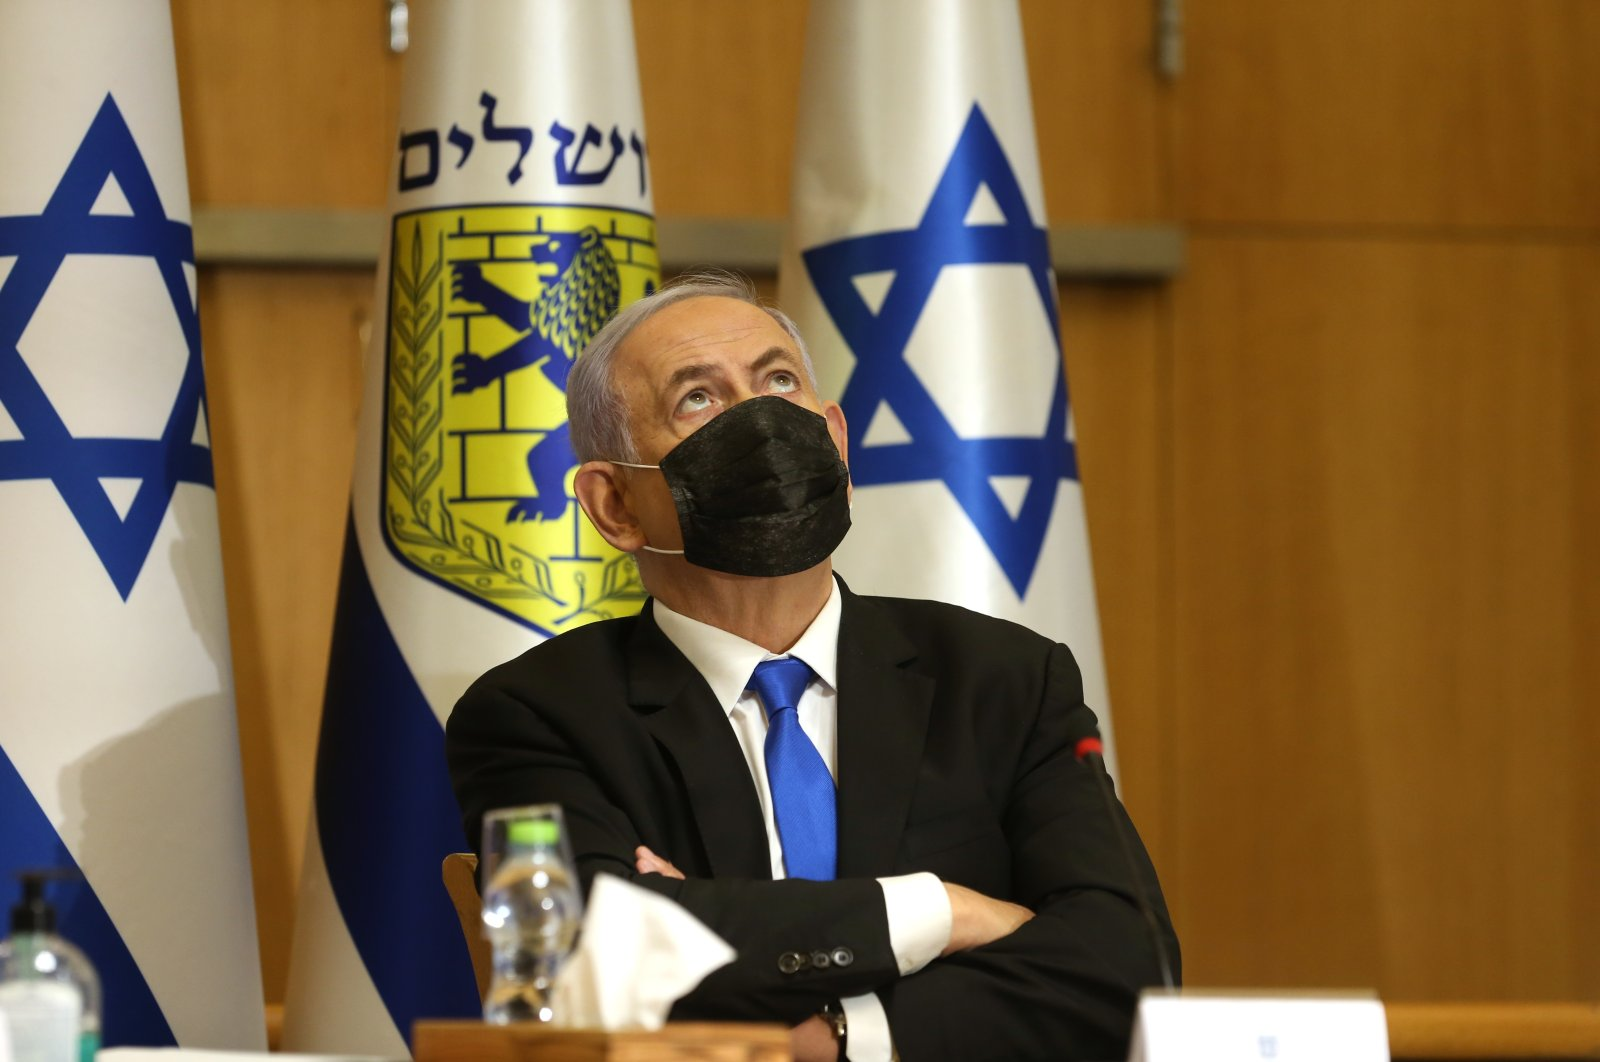 Israeli Prime Minister Benjamin Netanyahu attends a special Cabinet meeting on the occasion of Jerusalem Day, at the Jerusalem Municipality building, in Jerusalem, May 9, 2021. (AP Photo)